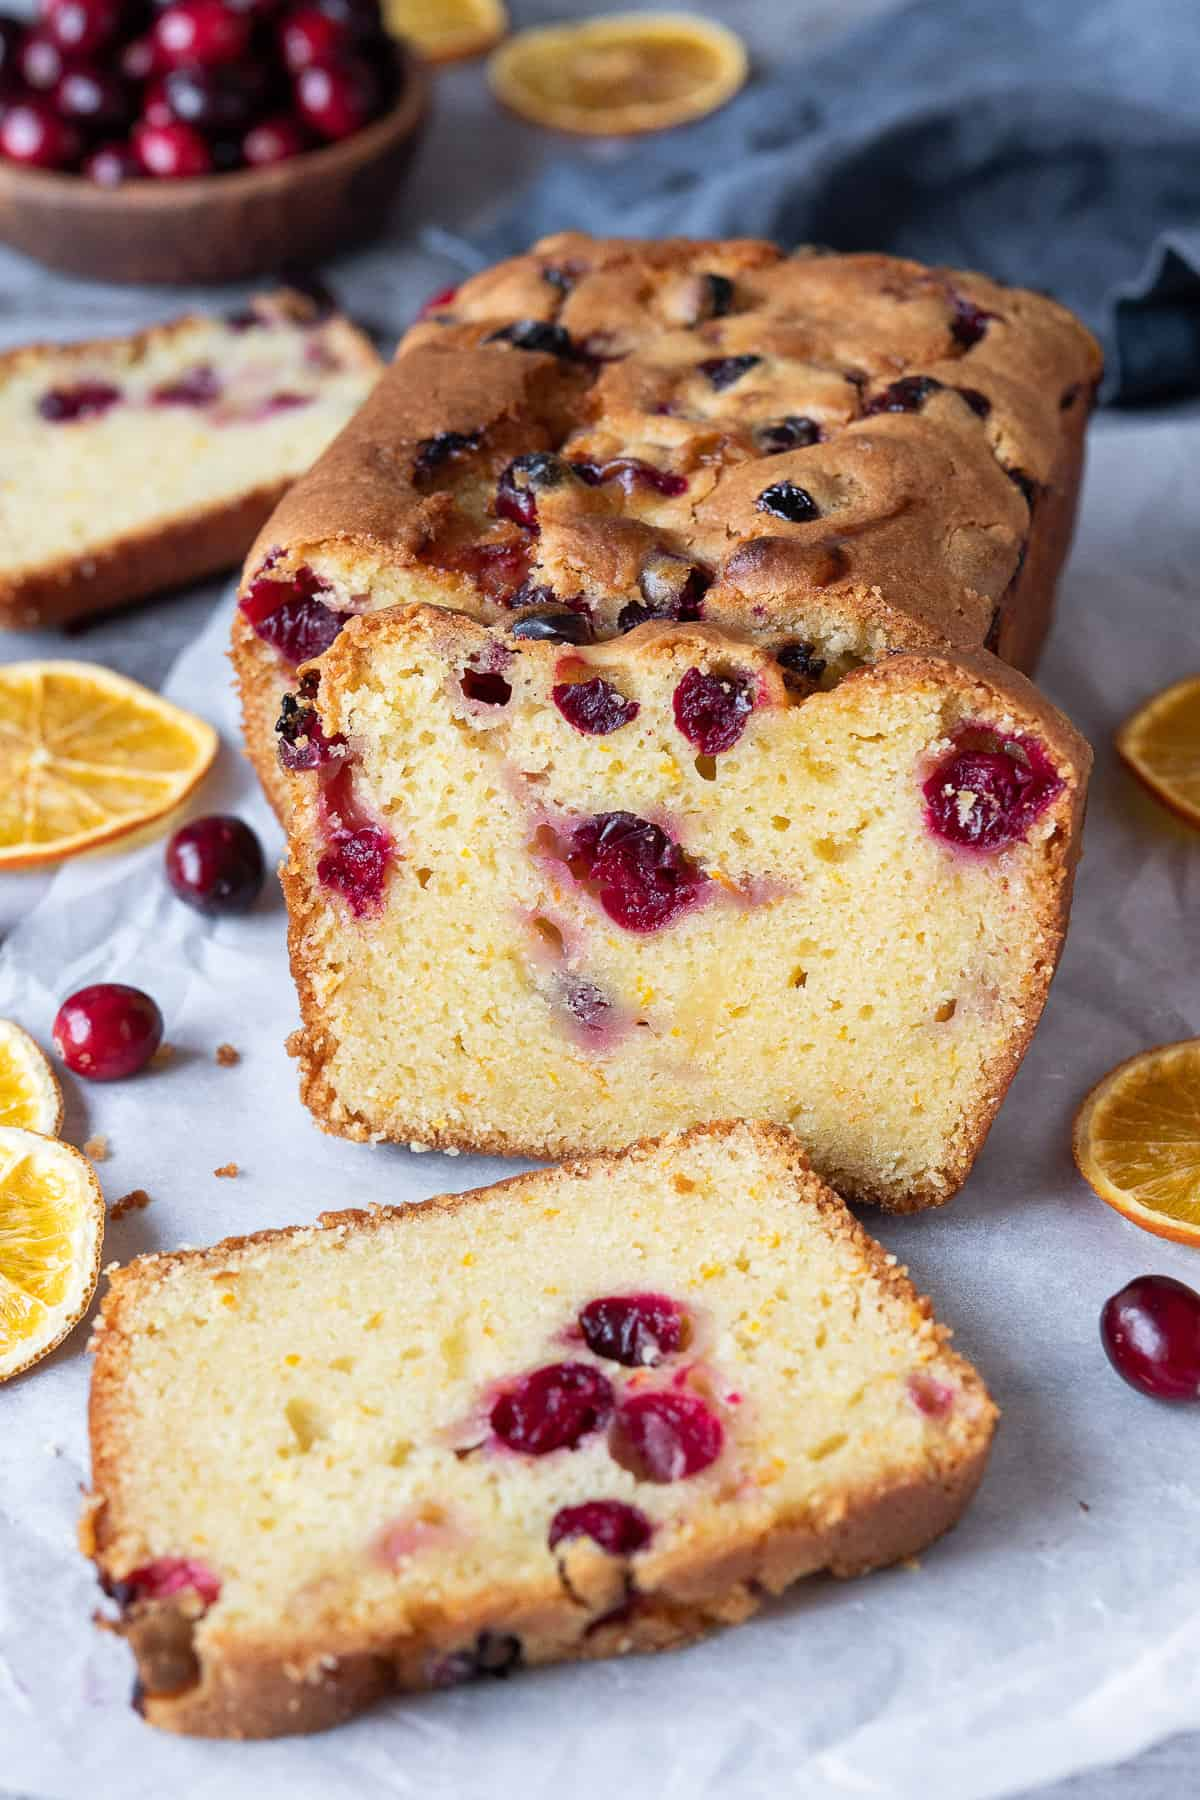 Vegan orange cranberry cake with three slices cut with dried orange slices and a bowl of fresh cranberries in the background.